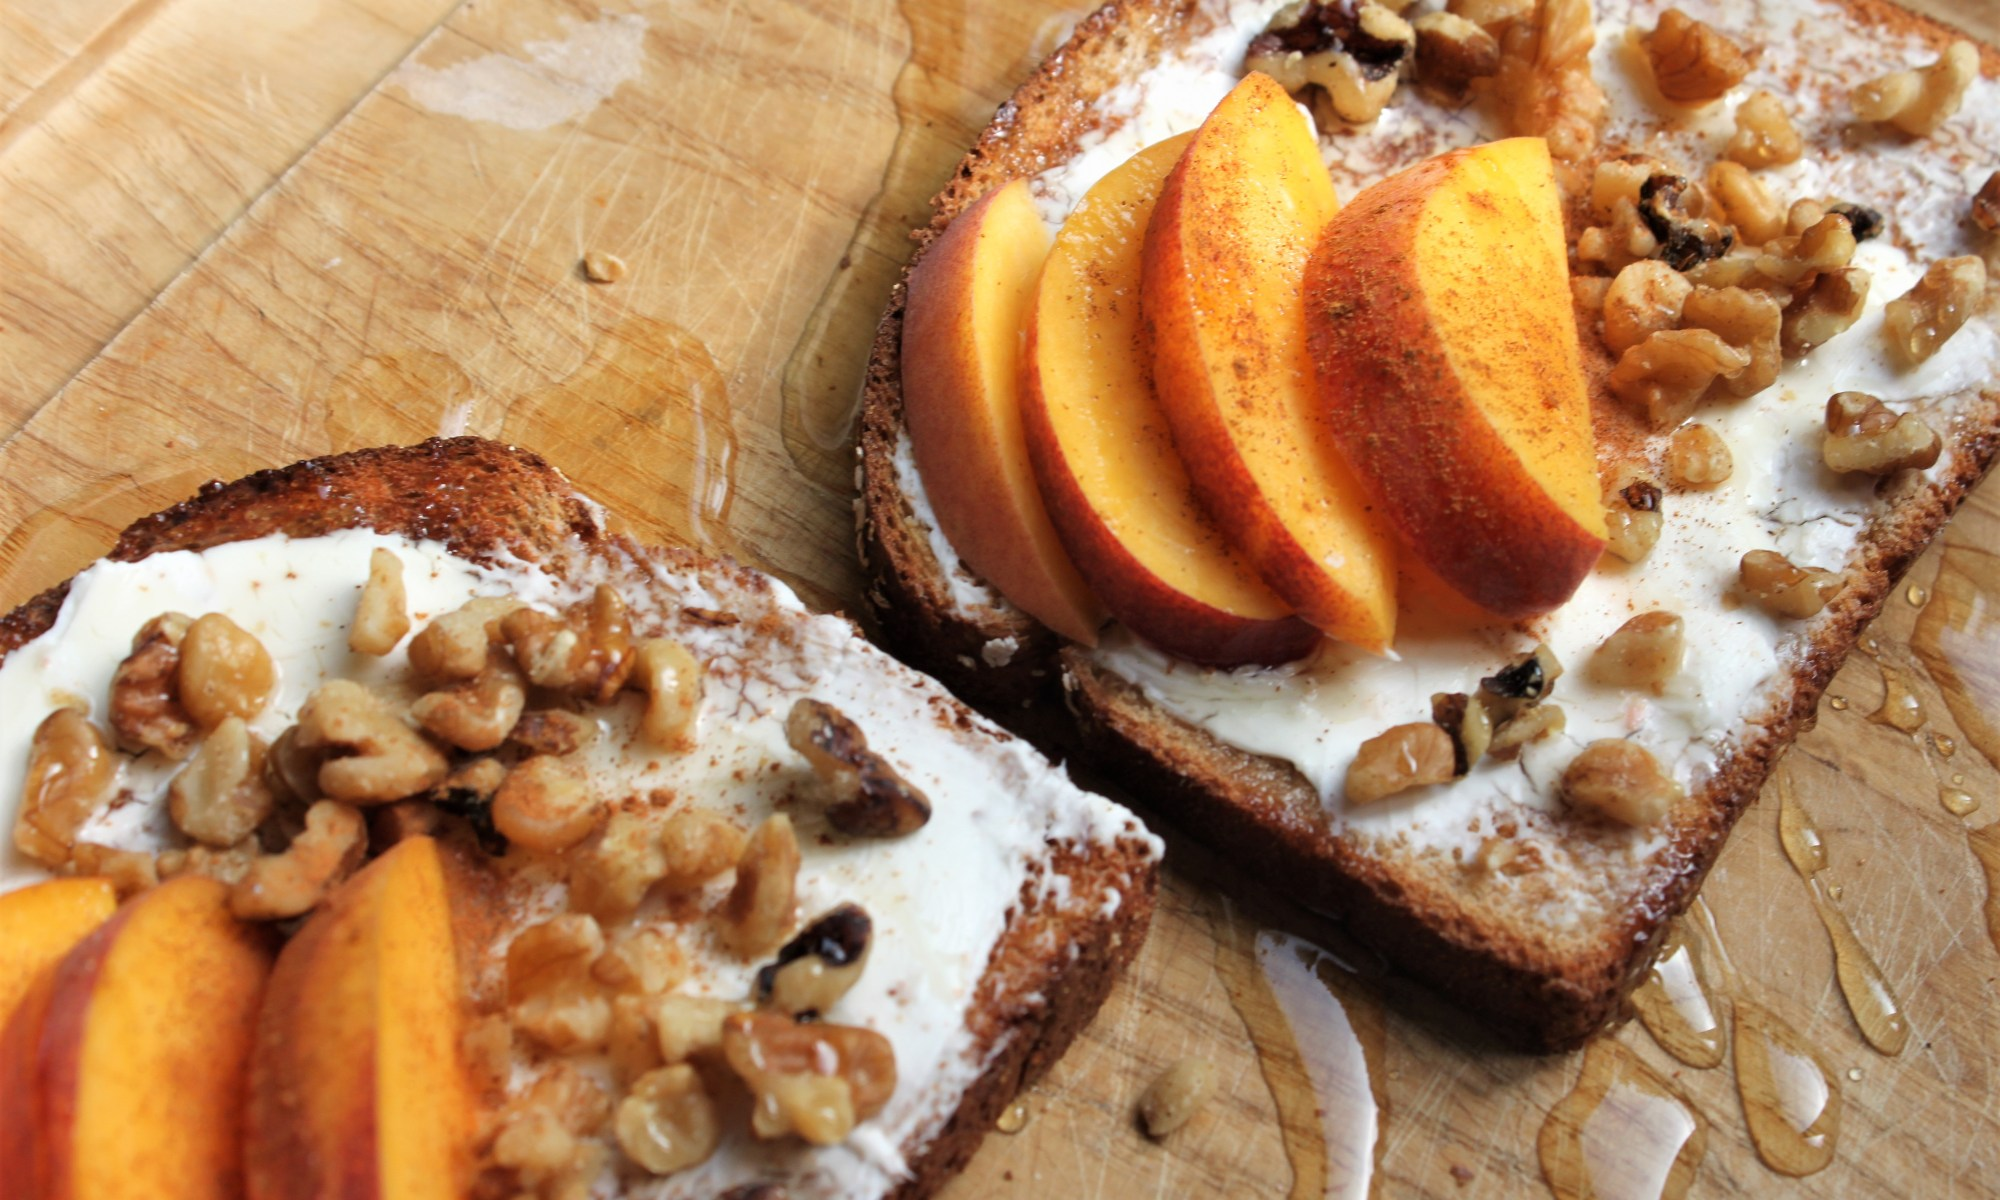 peaches and cream cheese toast is a great breakfast or snack